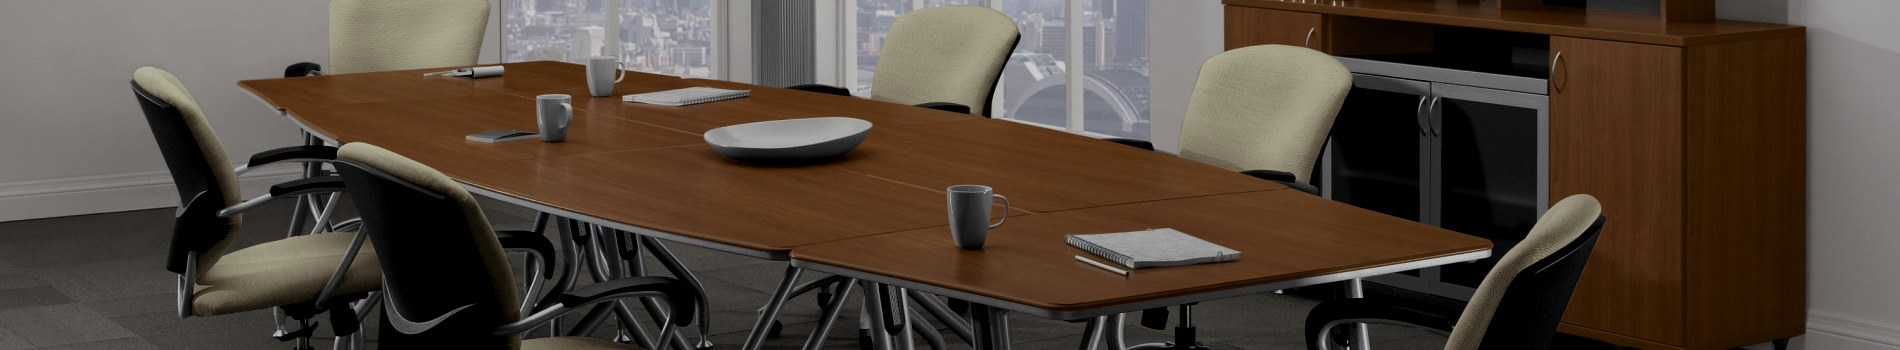 conference room furniture traditional modern office furniture for